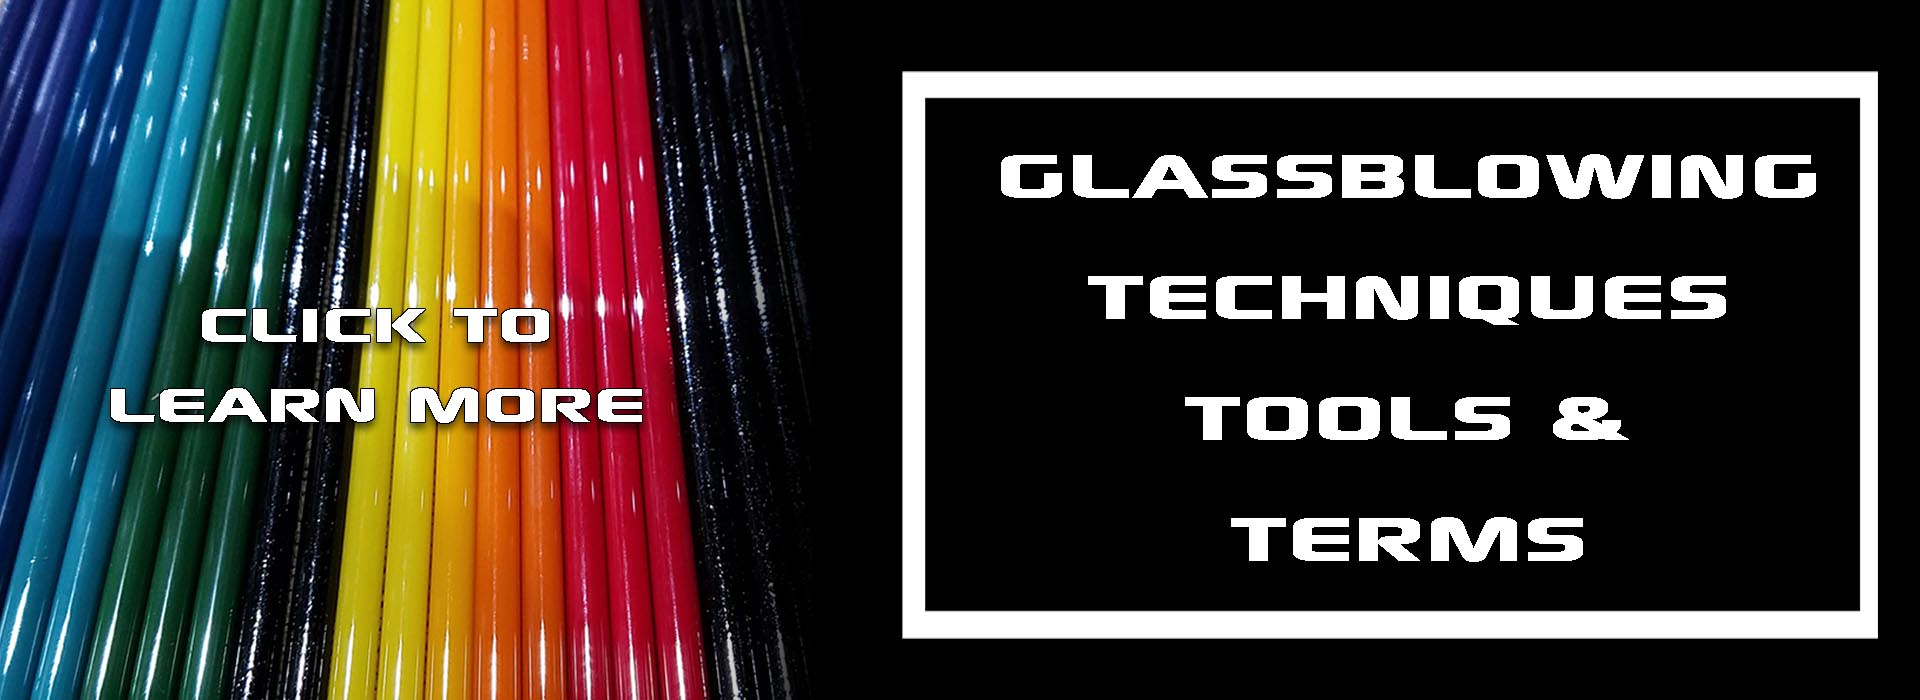 glass-terms-and-techniquesv3.jpg